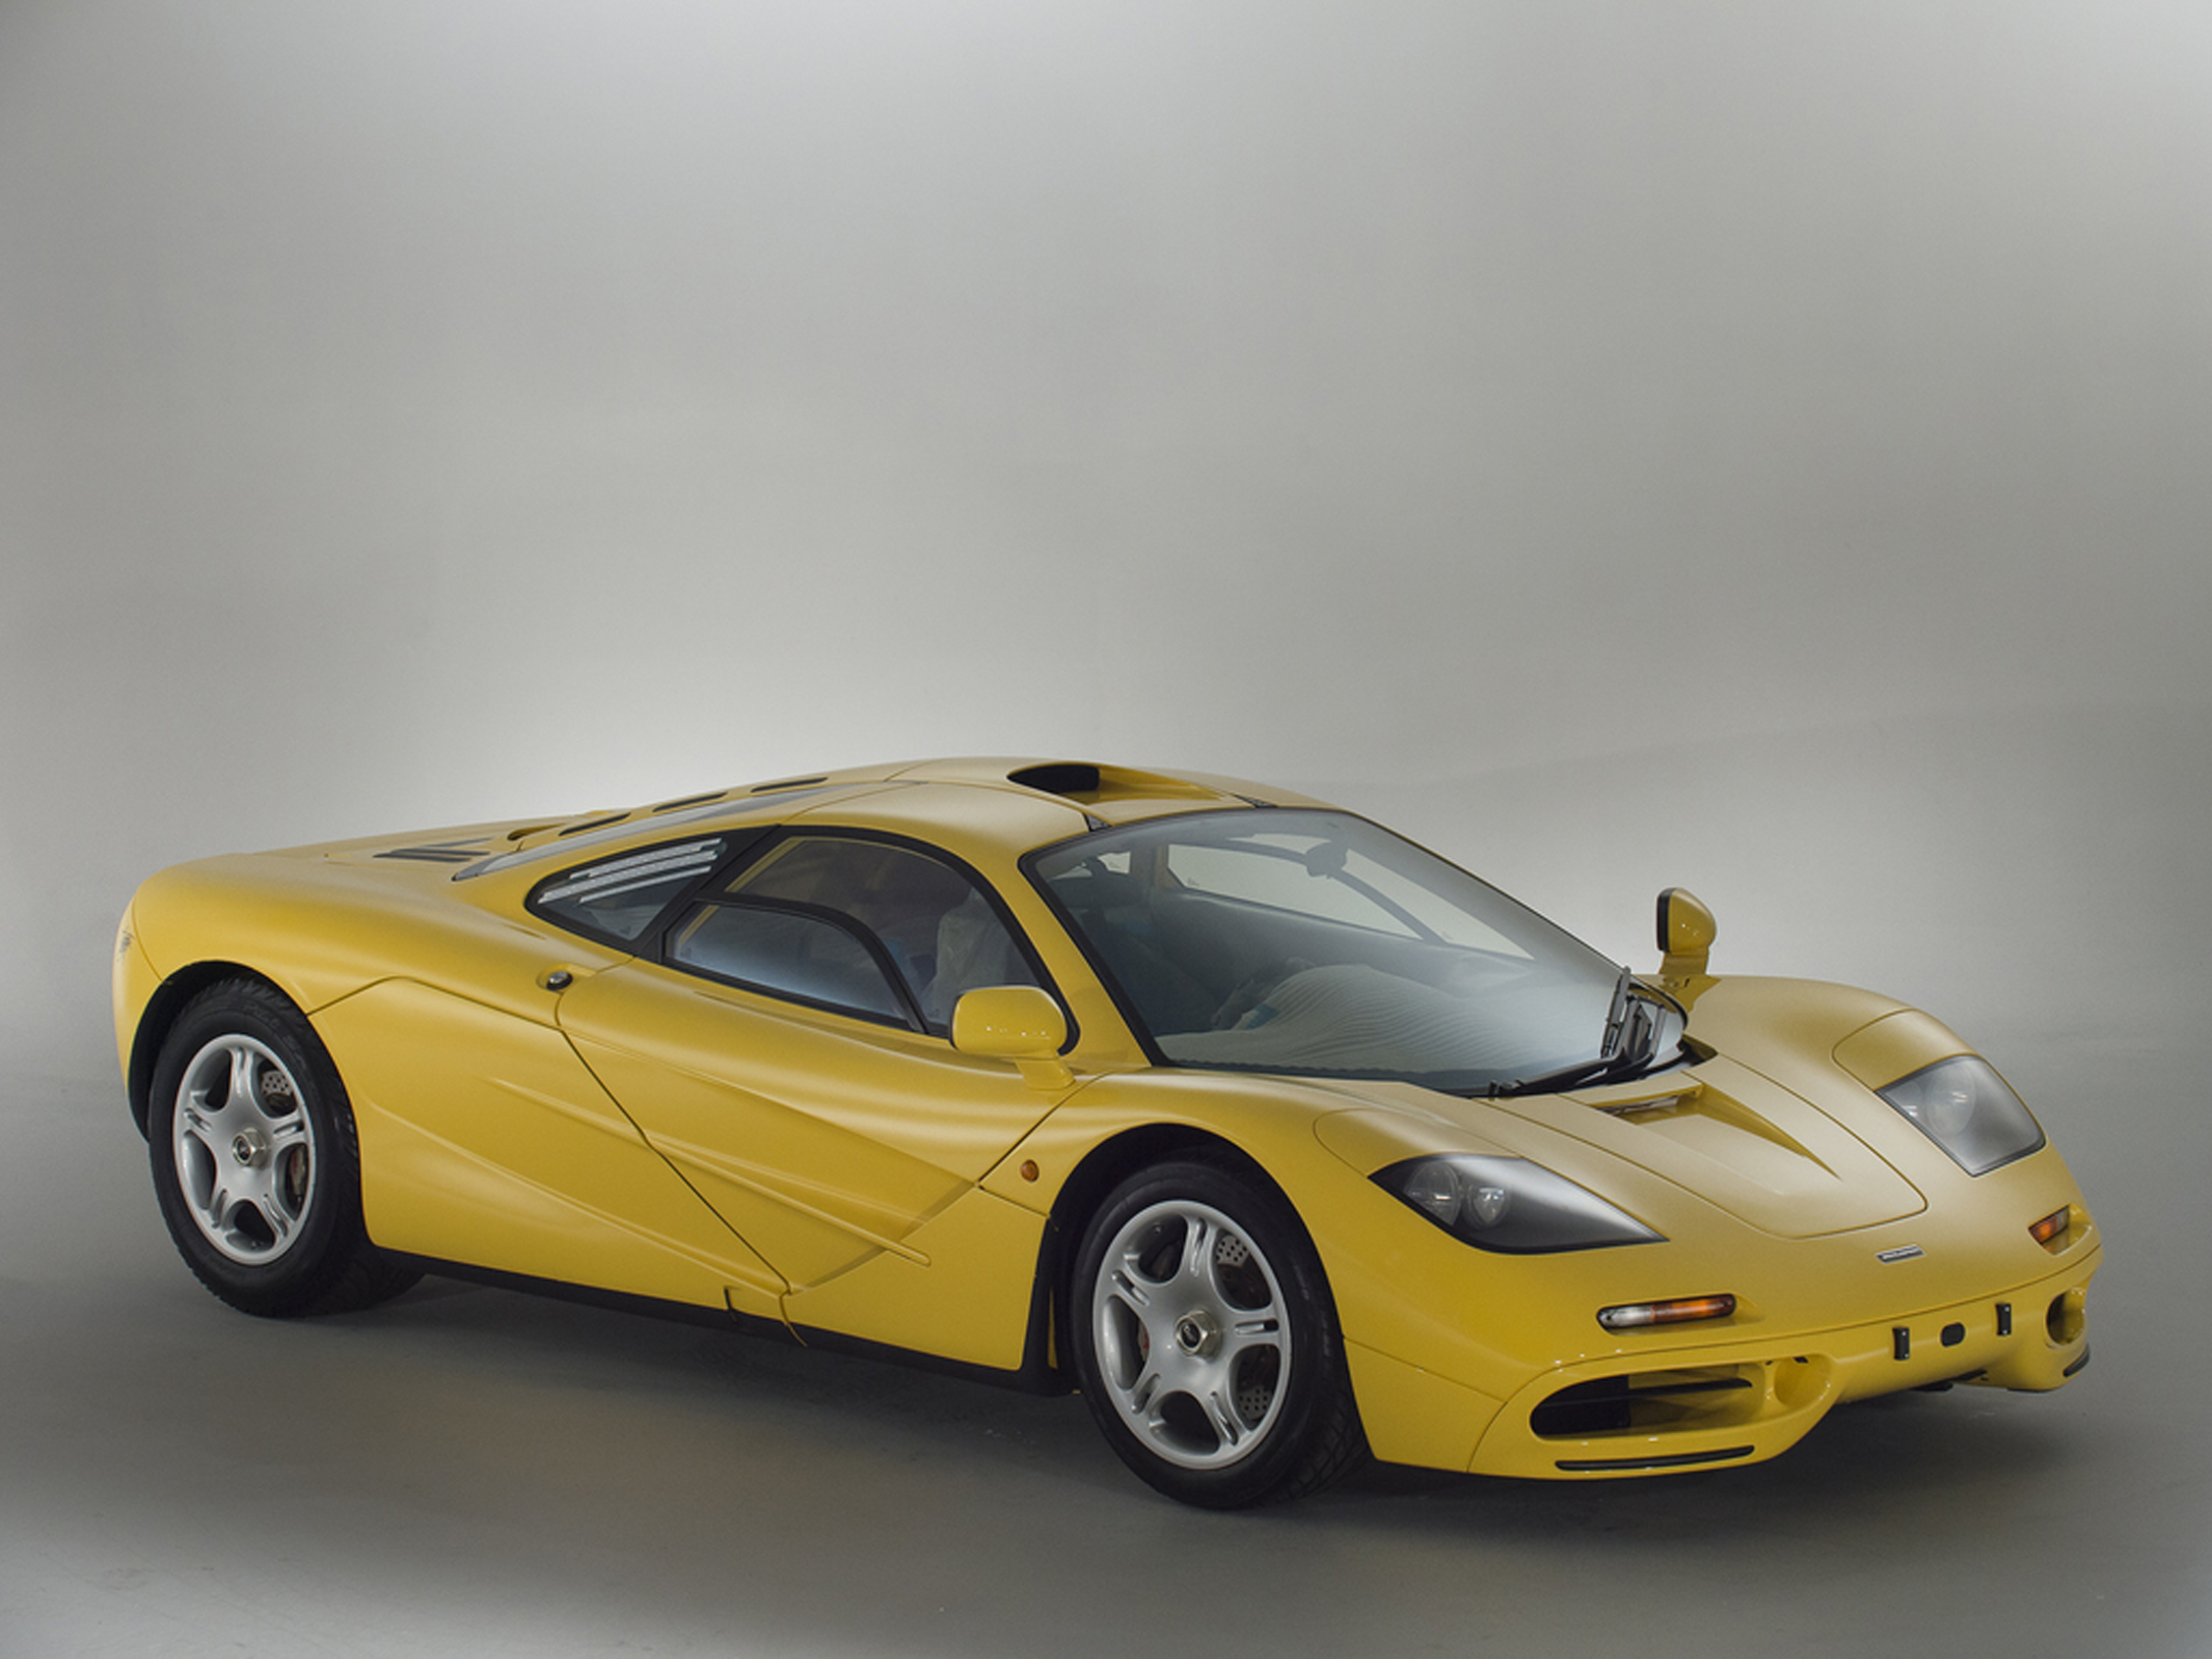 A New But Used McLaren F1 Is For Sale And It's Like A Wet